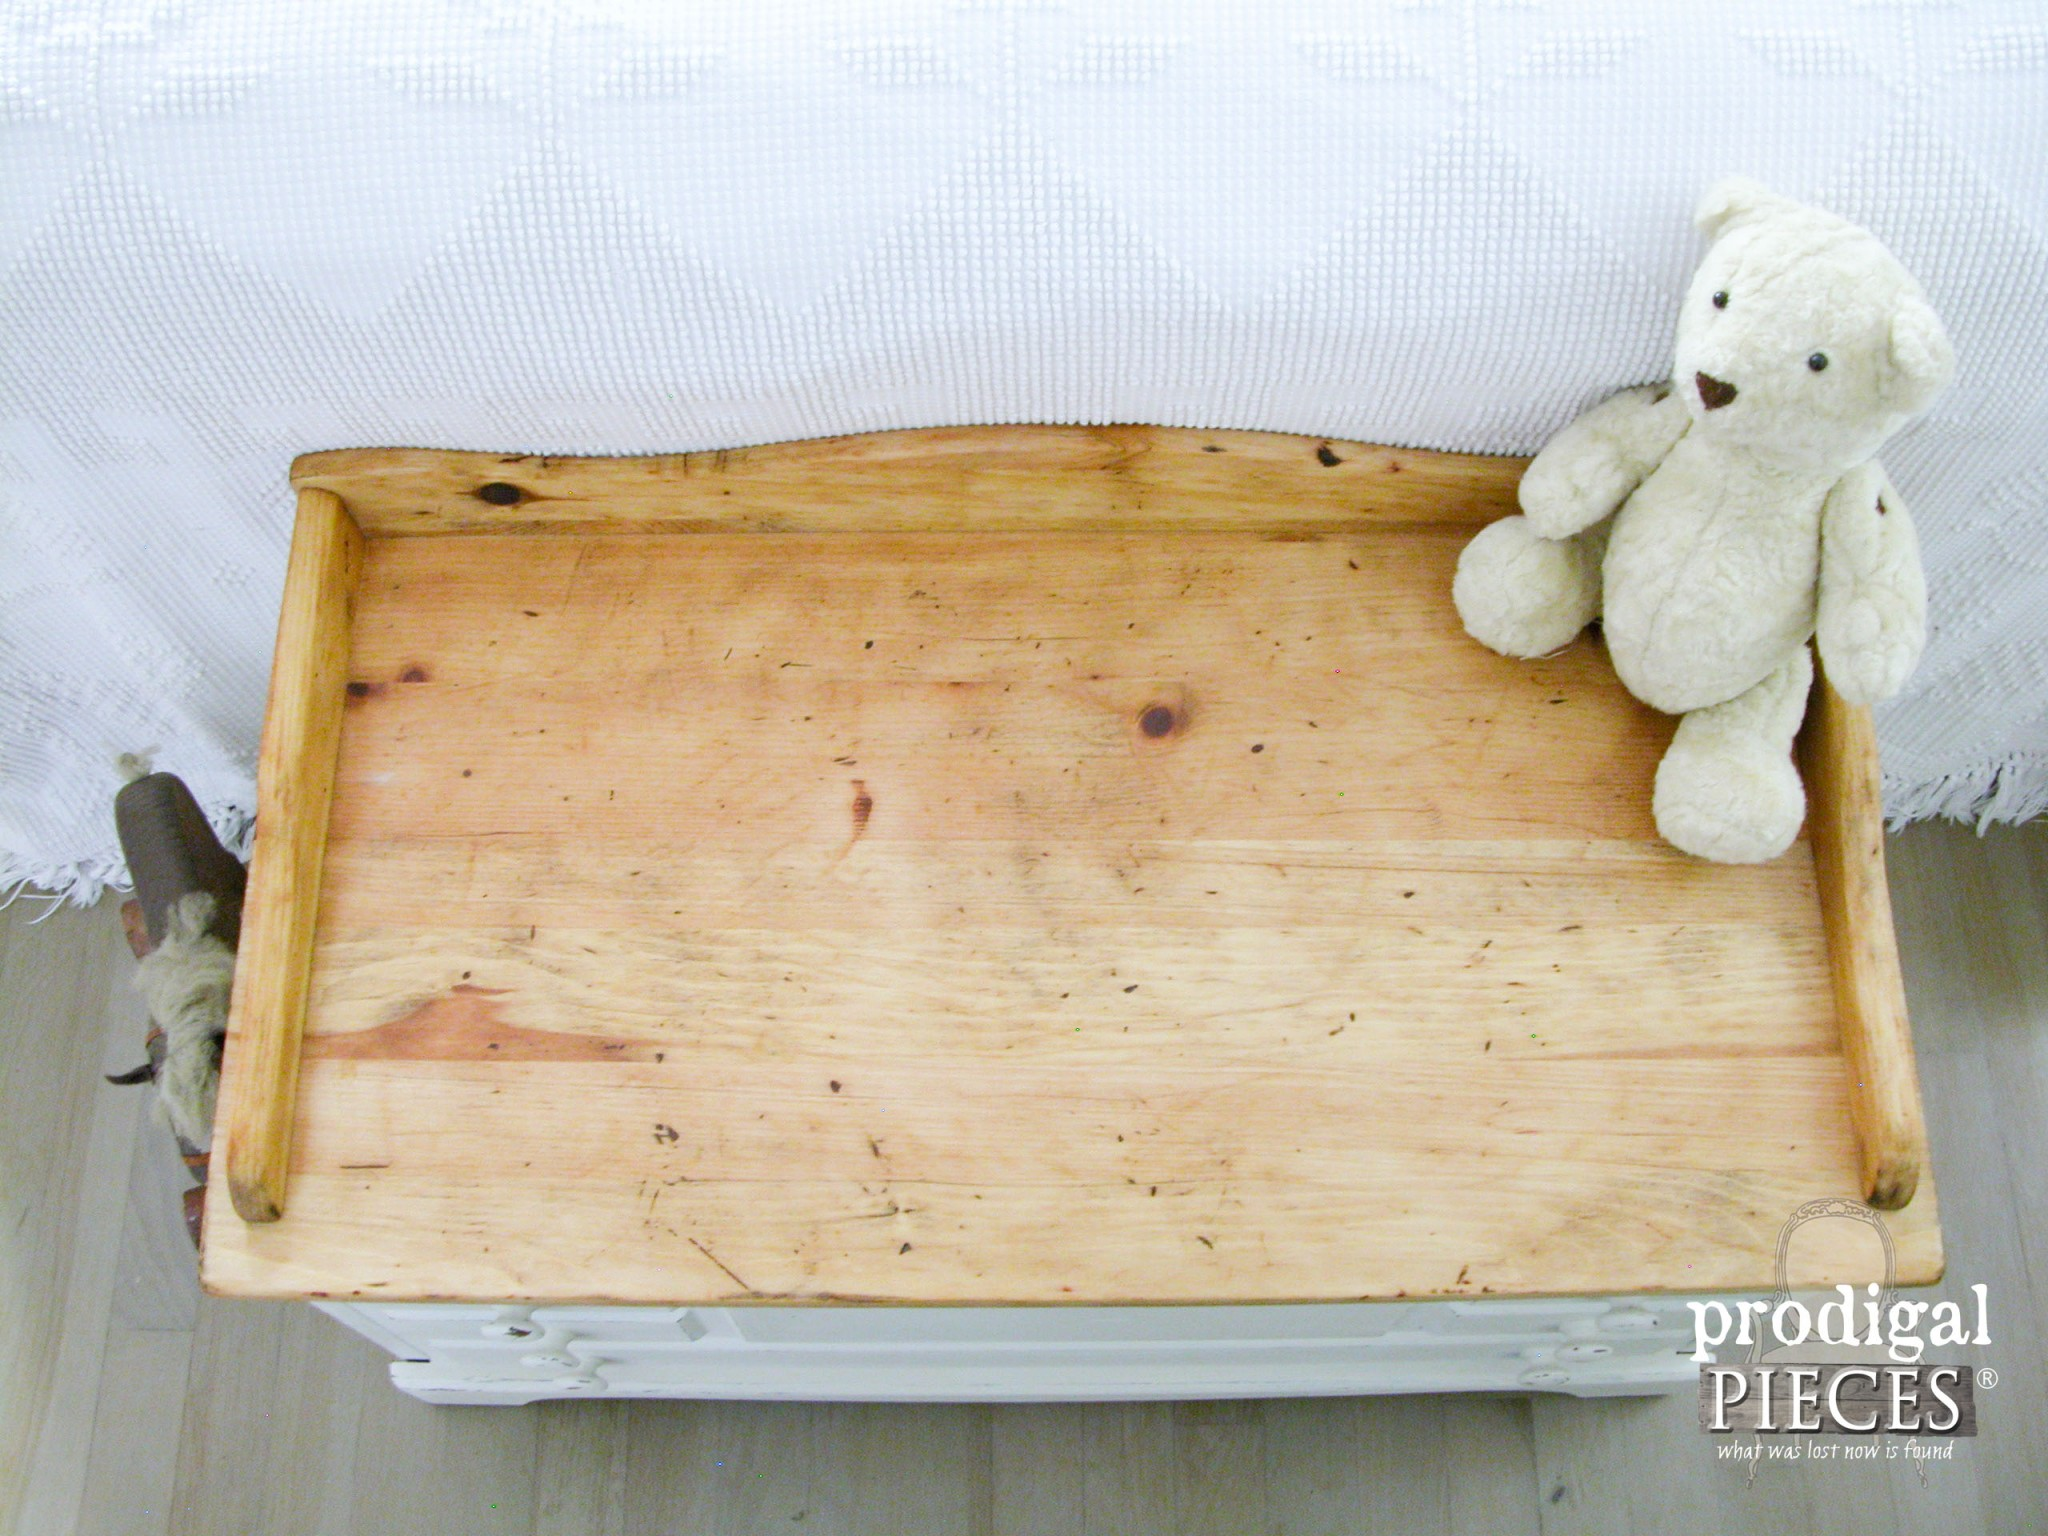 Rustic Farmhouse Pine Wooden Chest by Prodigal Pieces | www.prodigalpieces.com